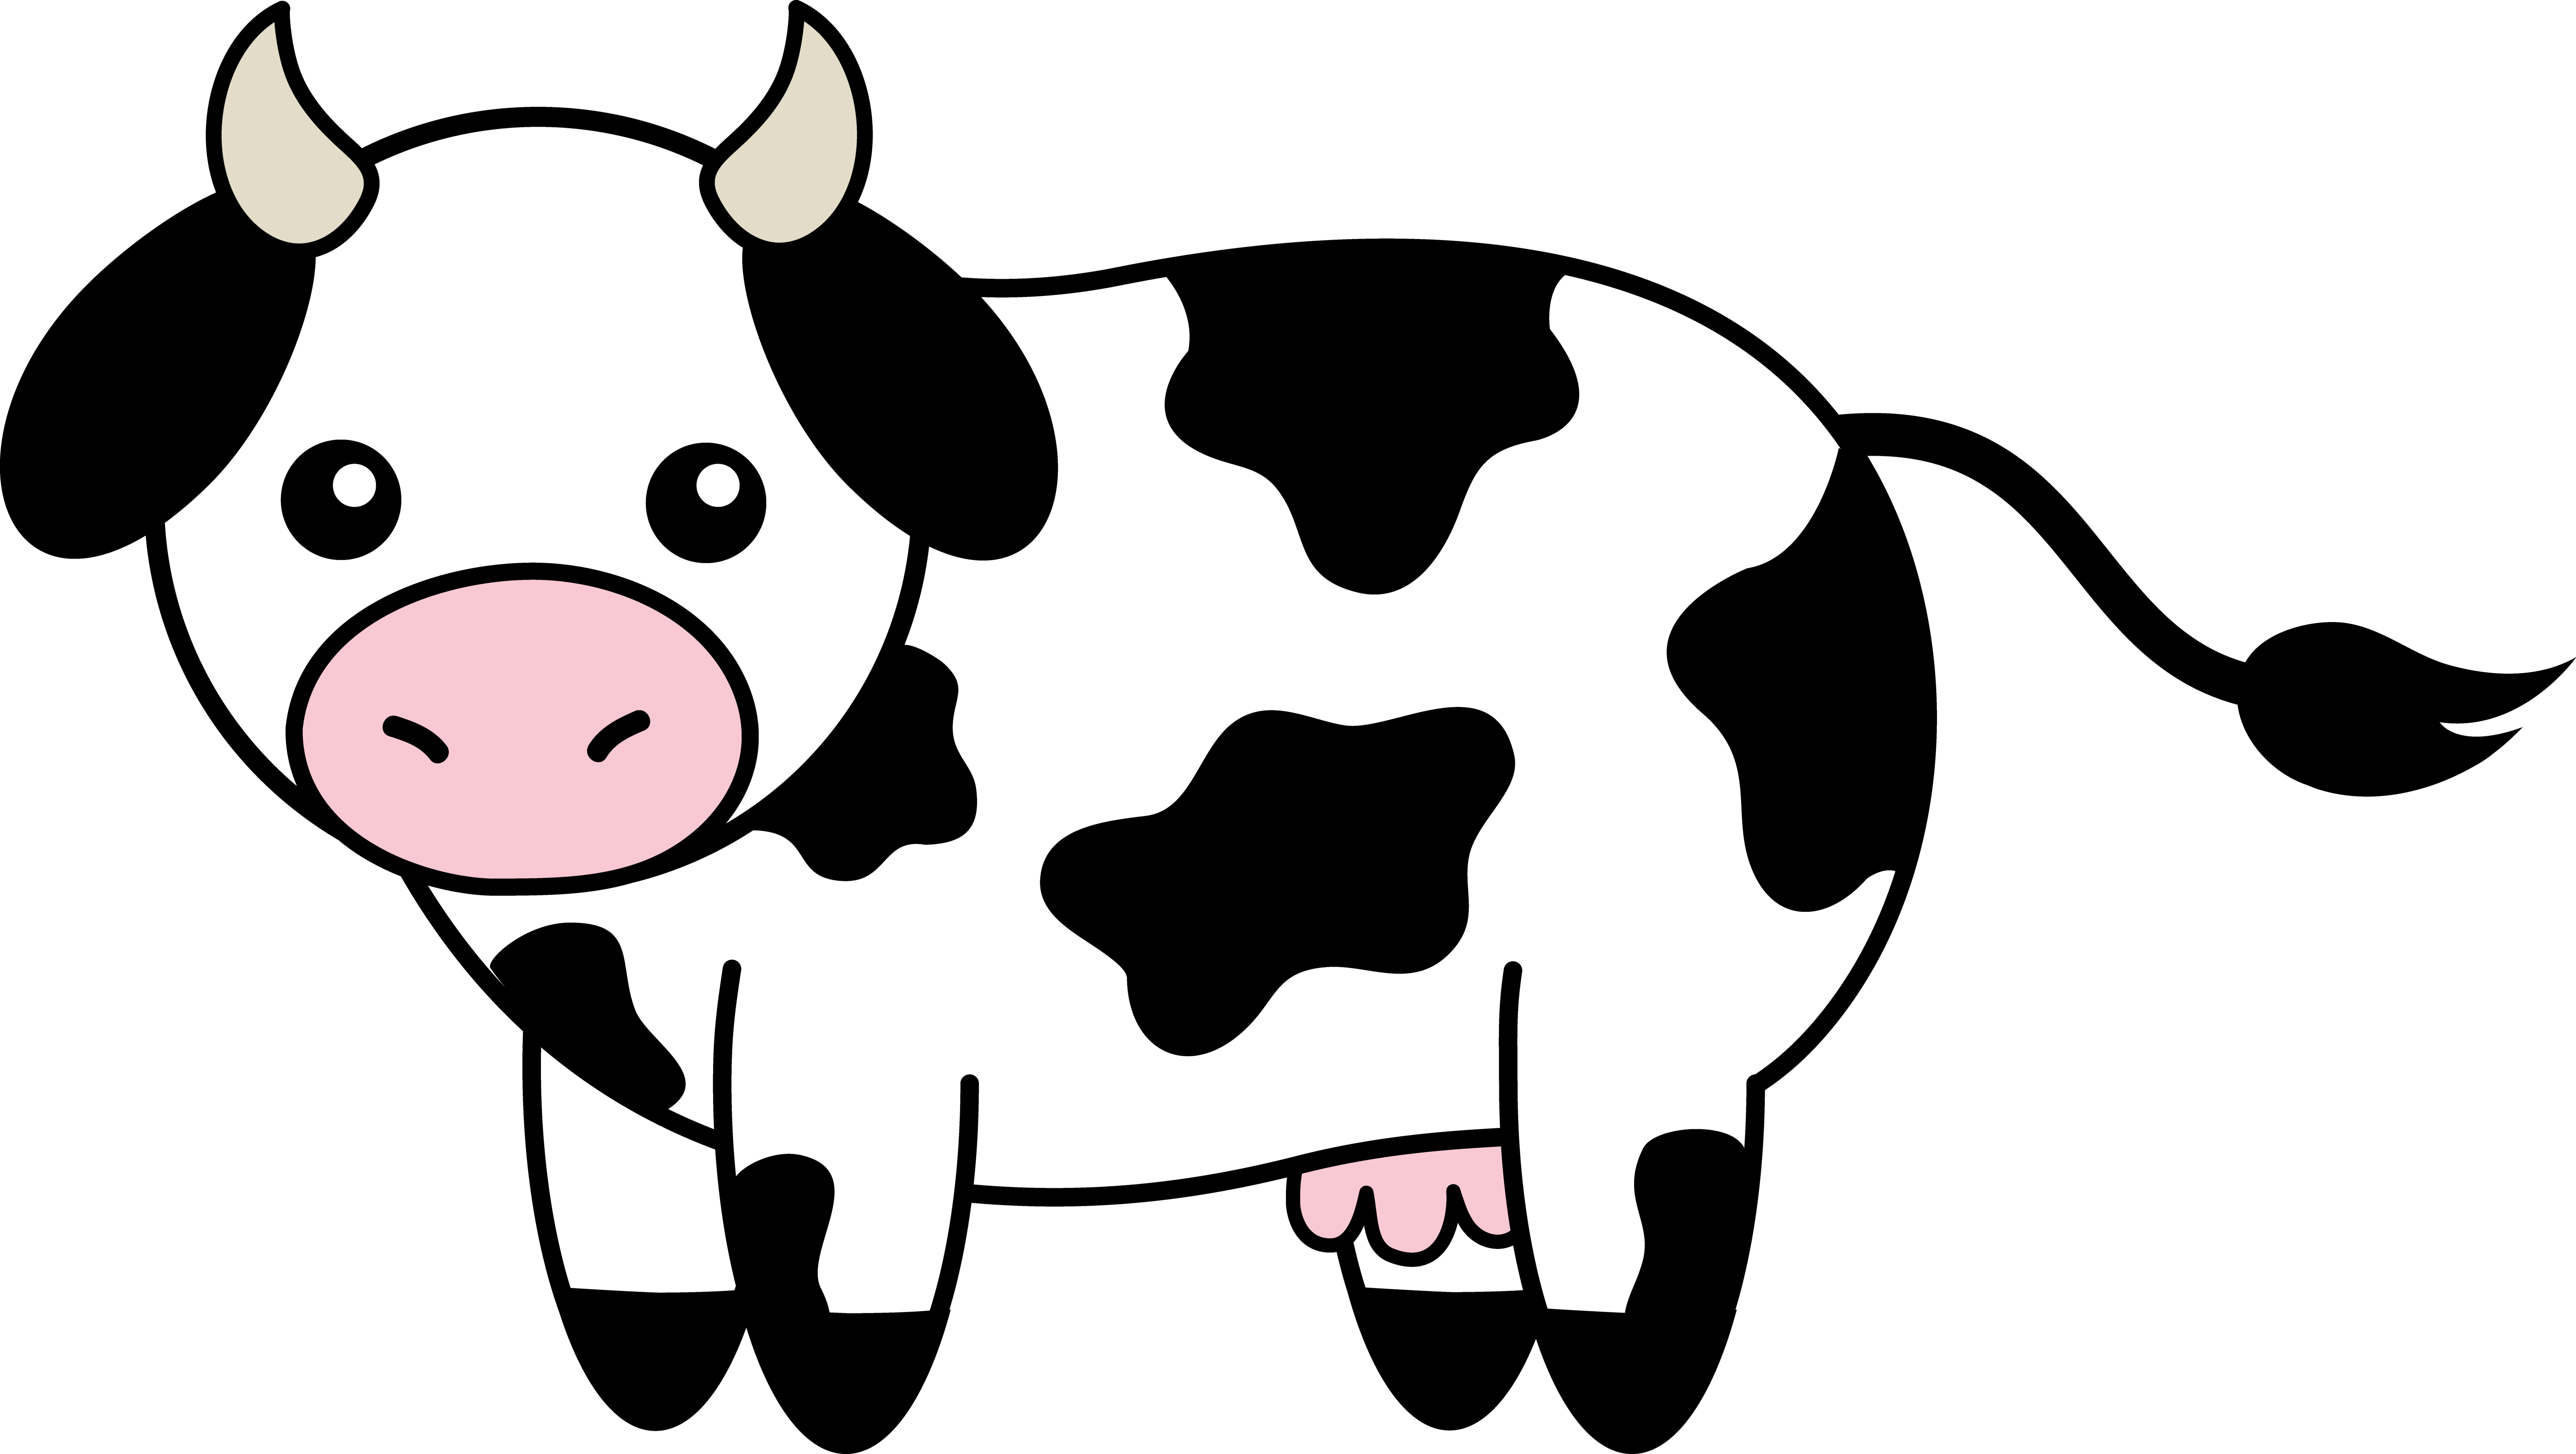 Cows eating apple clipart clip art library download 28+ Collection of Image Of Cow Clipart | High quality, free cliparts ... clip art library download